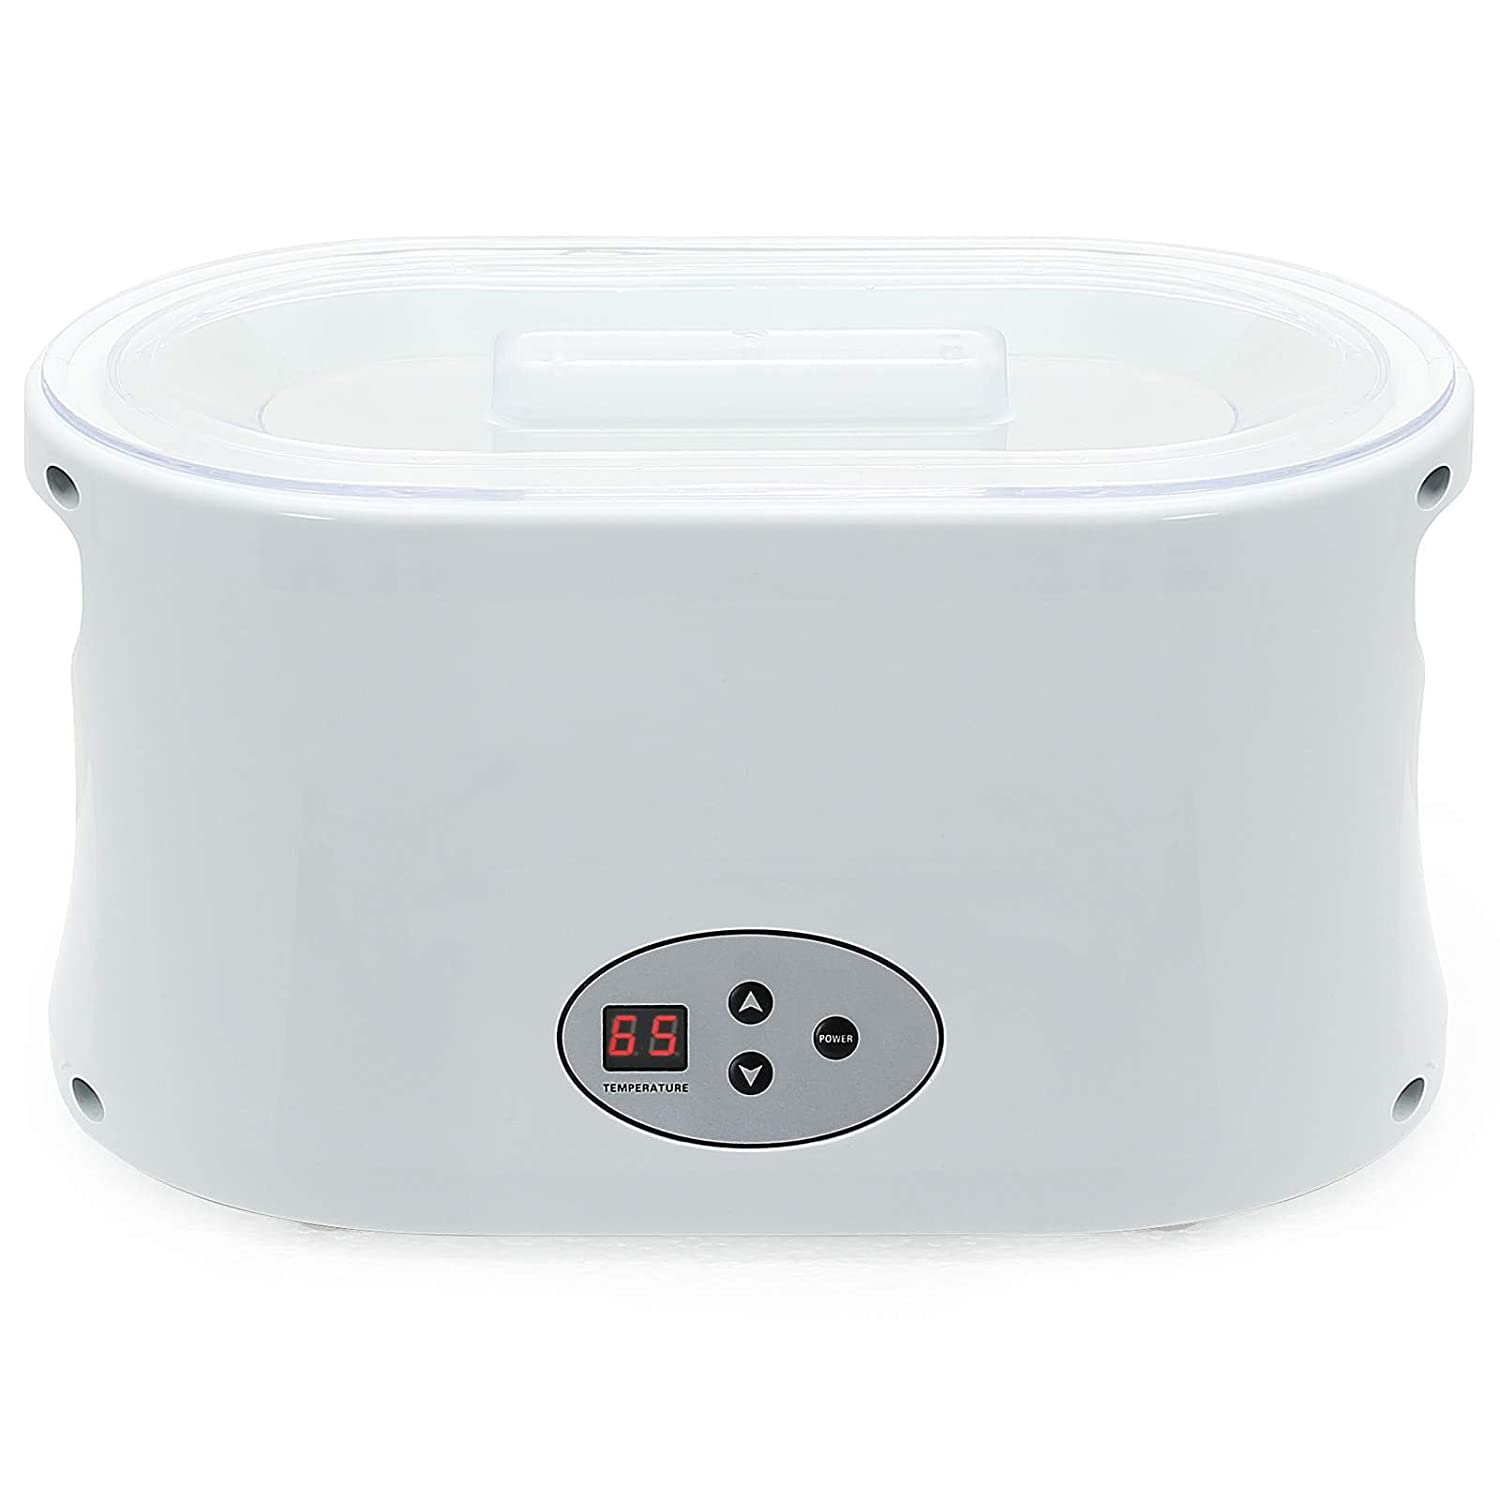 Amazon.com : Salon Sundry Portable Electric Hot Paraffin Wax ... for Paraffin Wax Foot Bath  29jwn